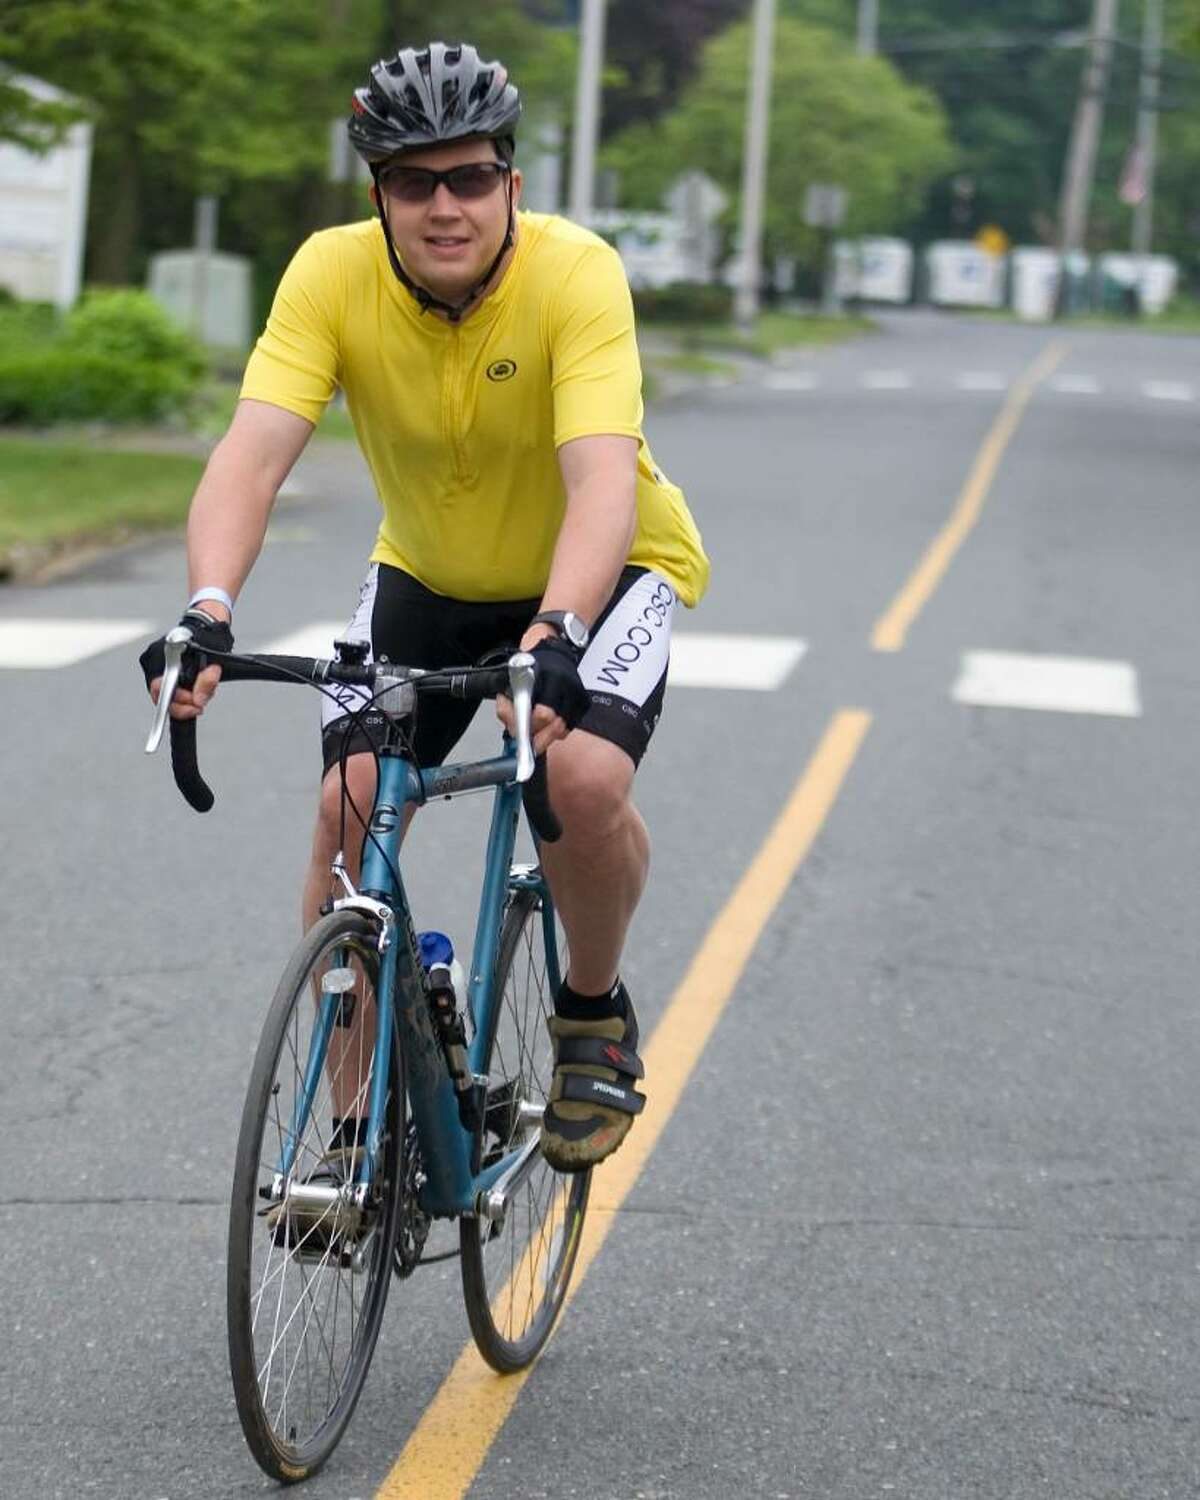 New Fairfield resident Marty Boardman takes off on a 51 mile ride during the 18th annual Cyclefest held by the Hat City Cyclists which started and ended in Bethel Sunday.